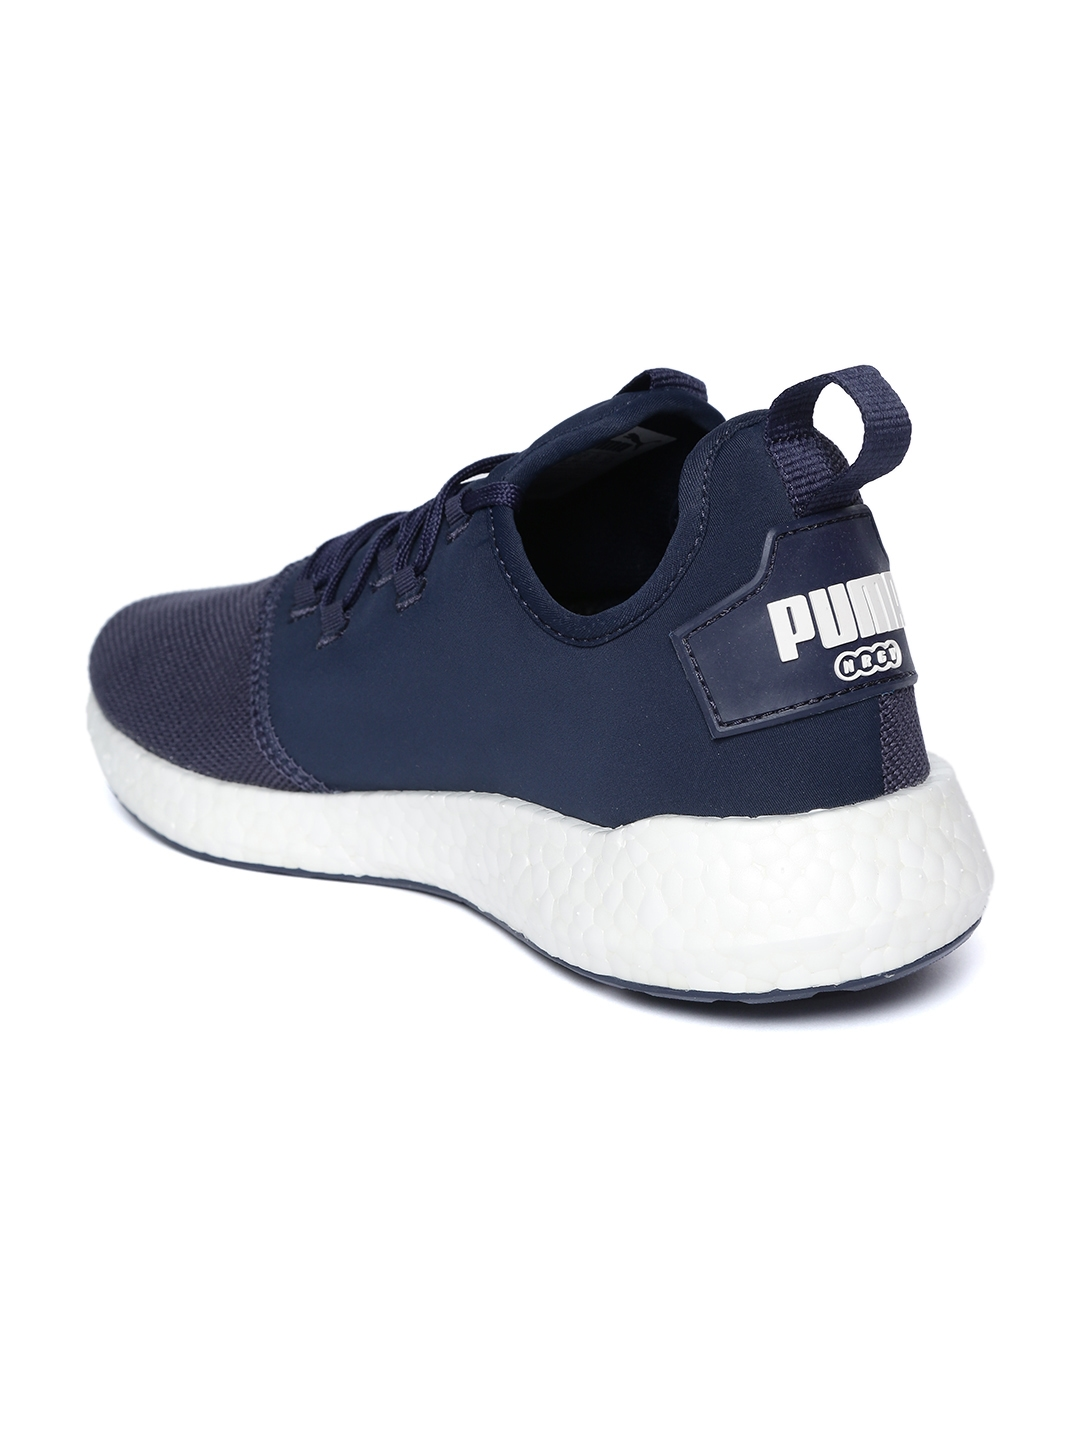 Buy Puma Men Navy NRGY Neko Sport Running Shoes - Sports Shoes for ... ec2806176